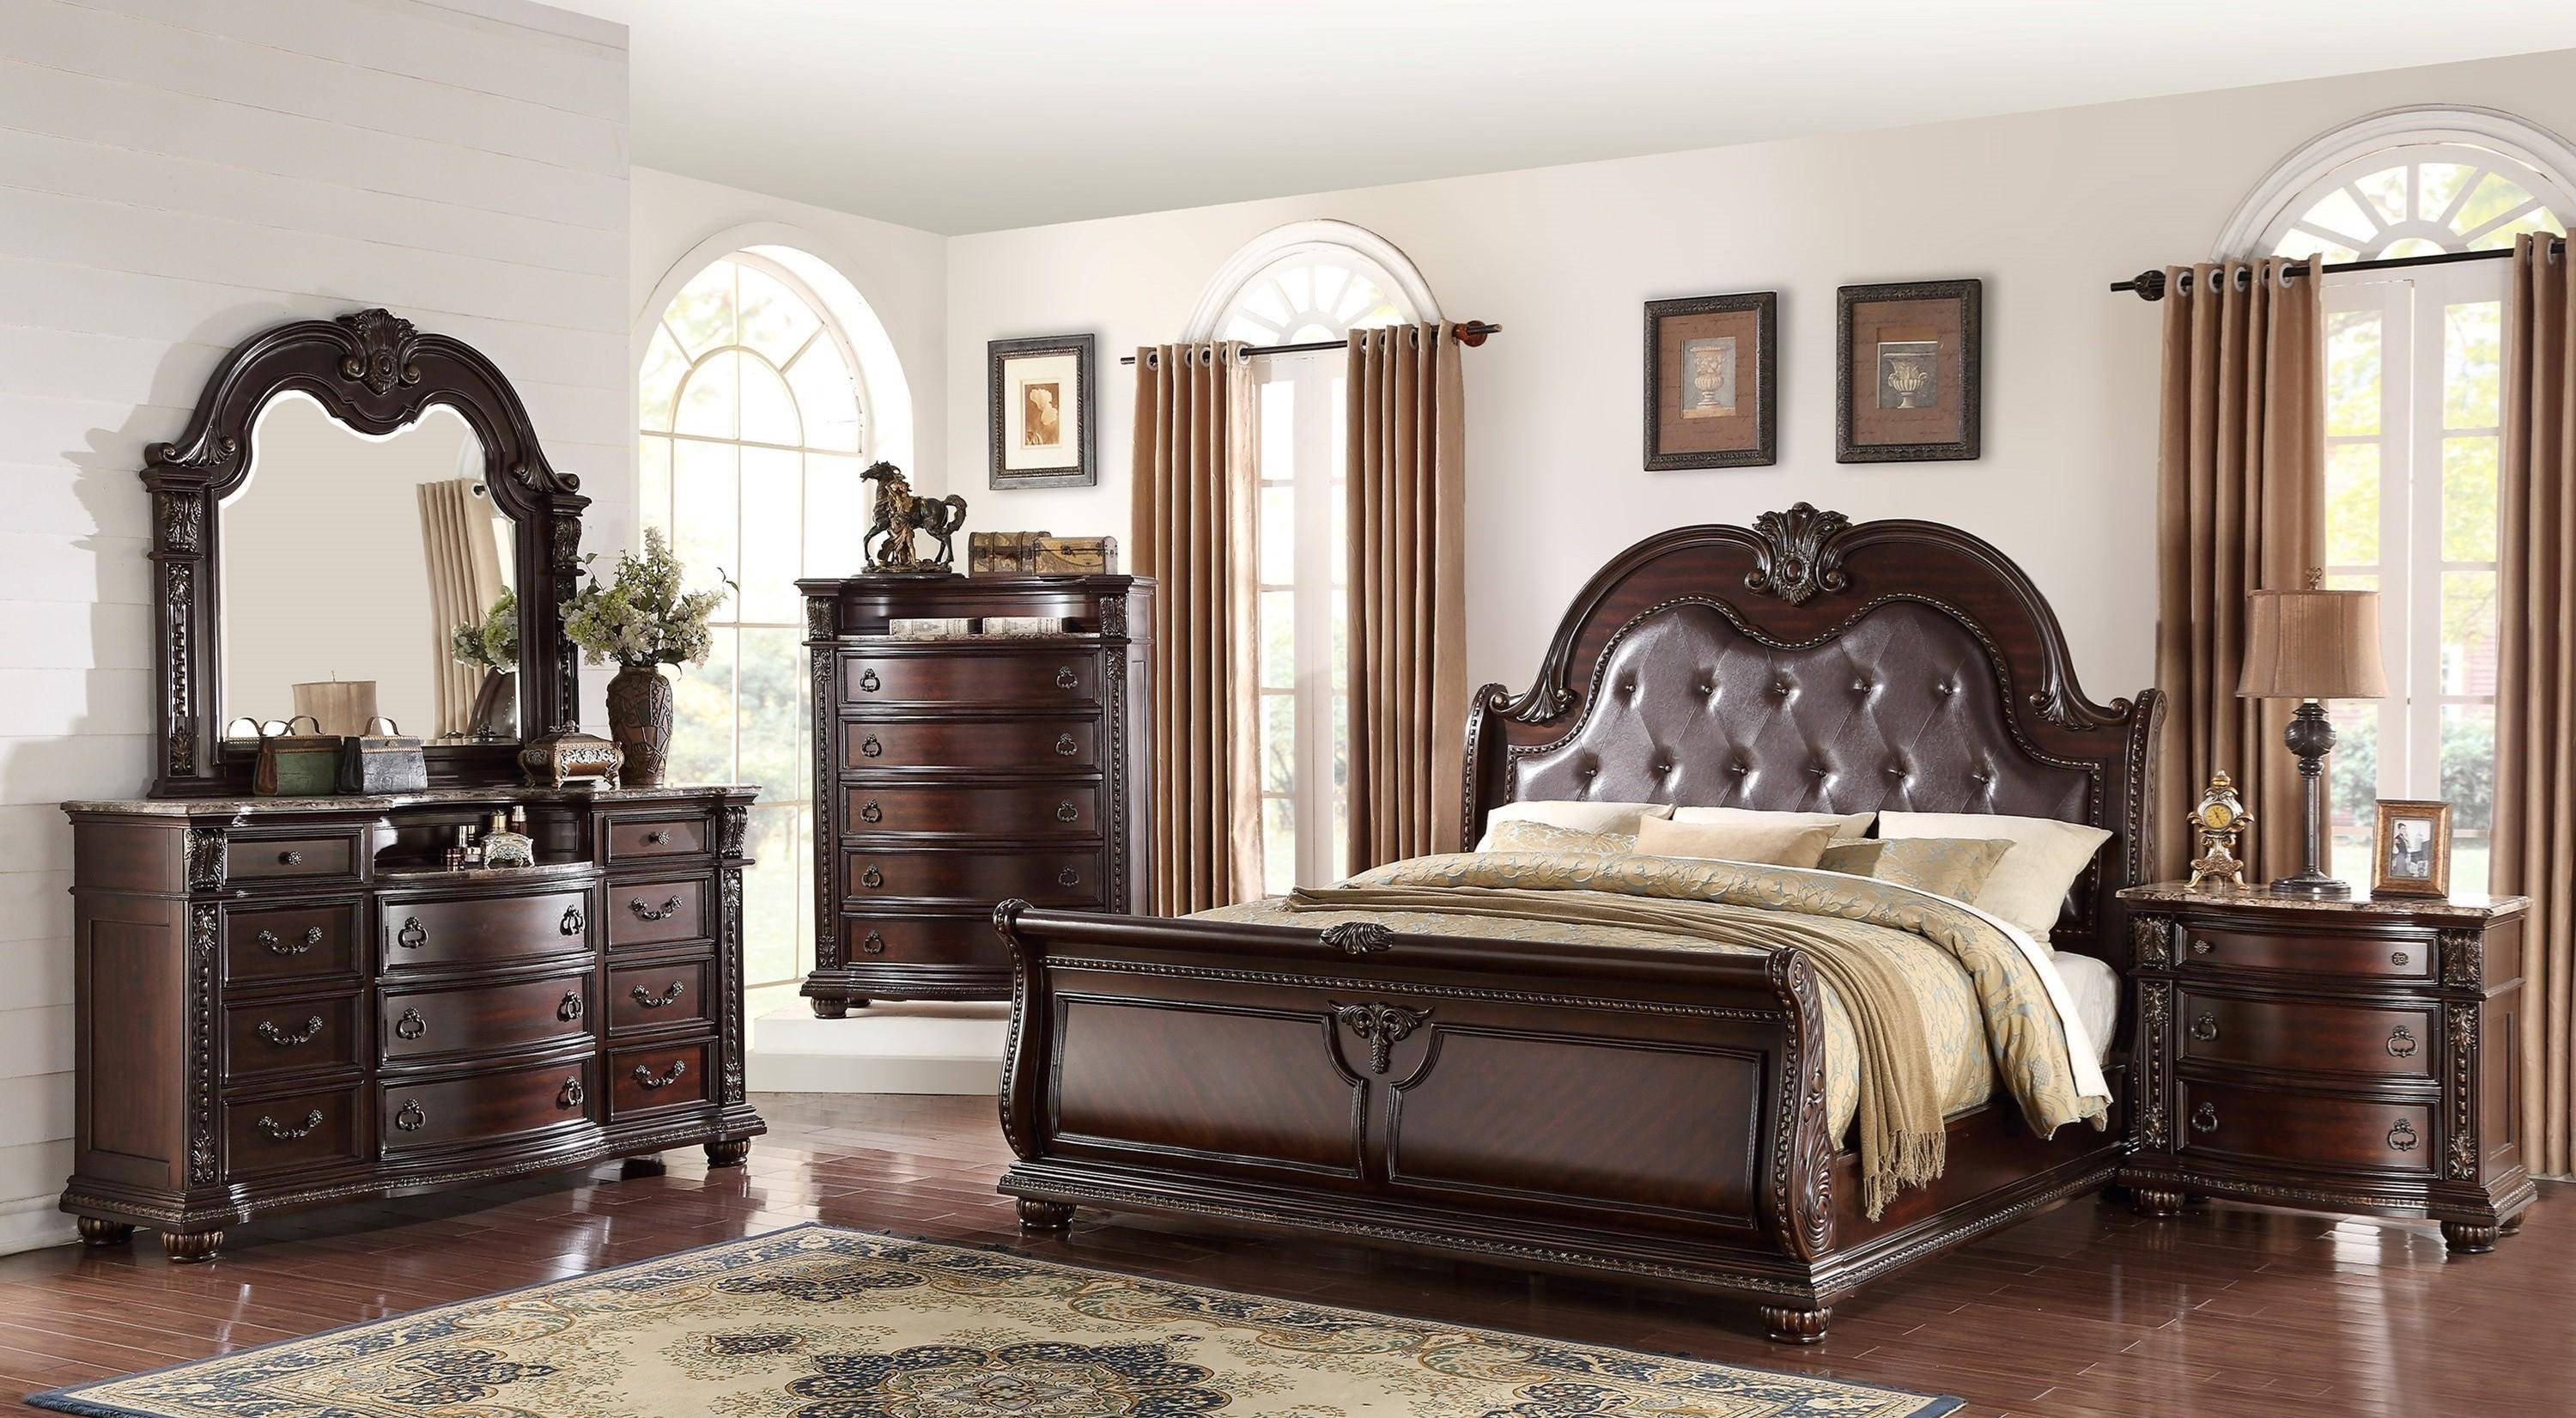 King Size Bedroom Set for Sale Lovely Crown Mark B1600 Stanley Cherry Finish solid Wood King